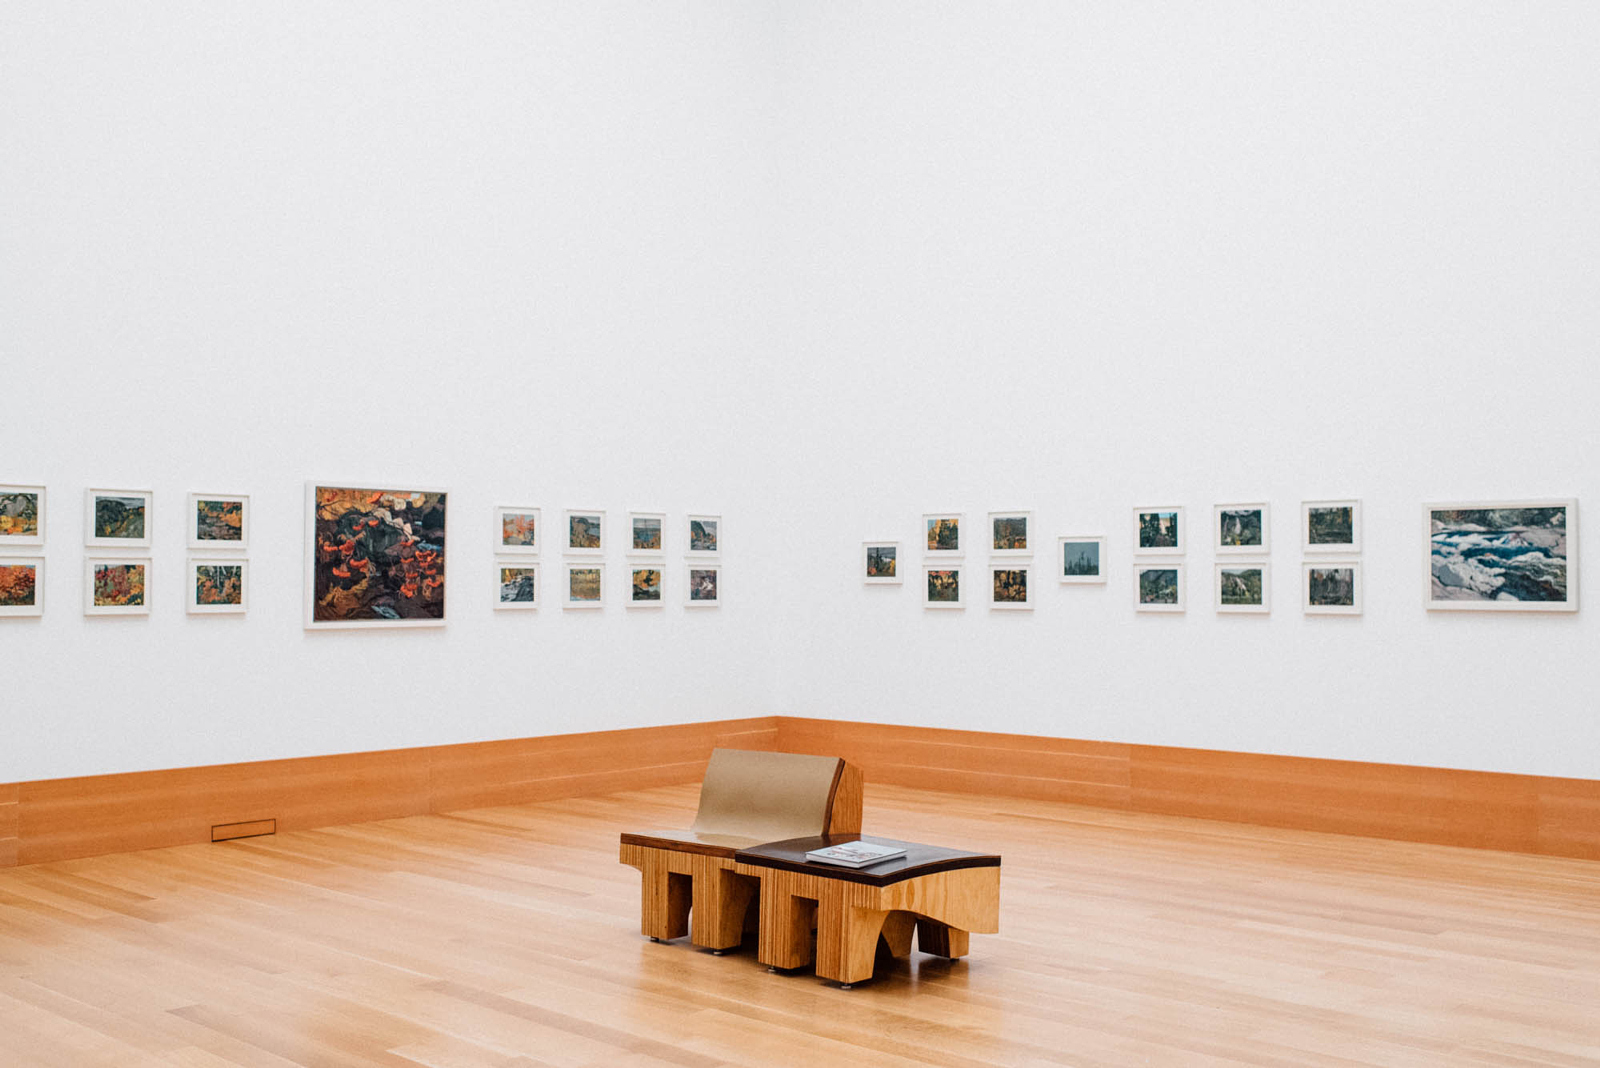 How to Respectfully Take Photos in Museums and Art Galleries